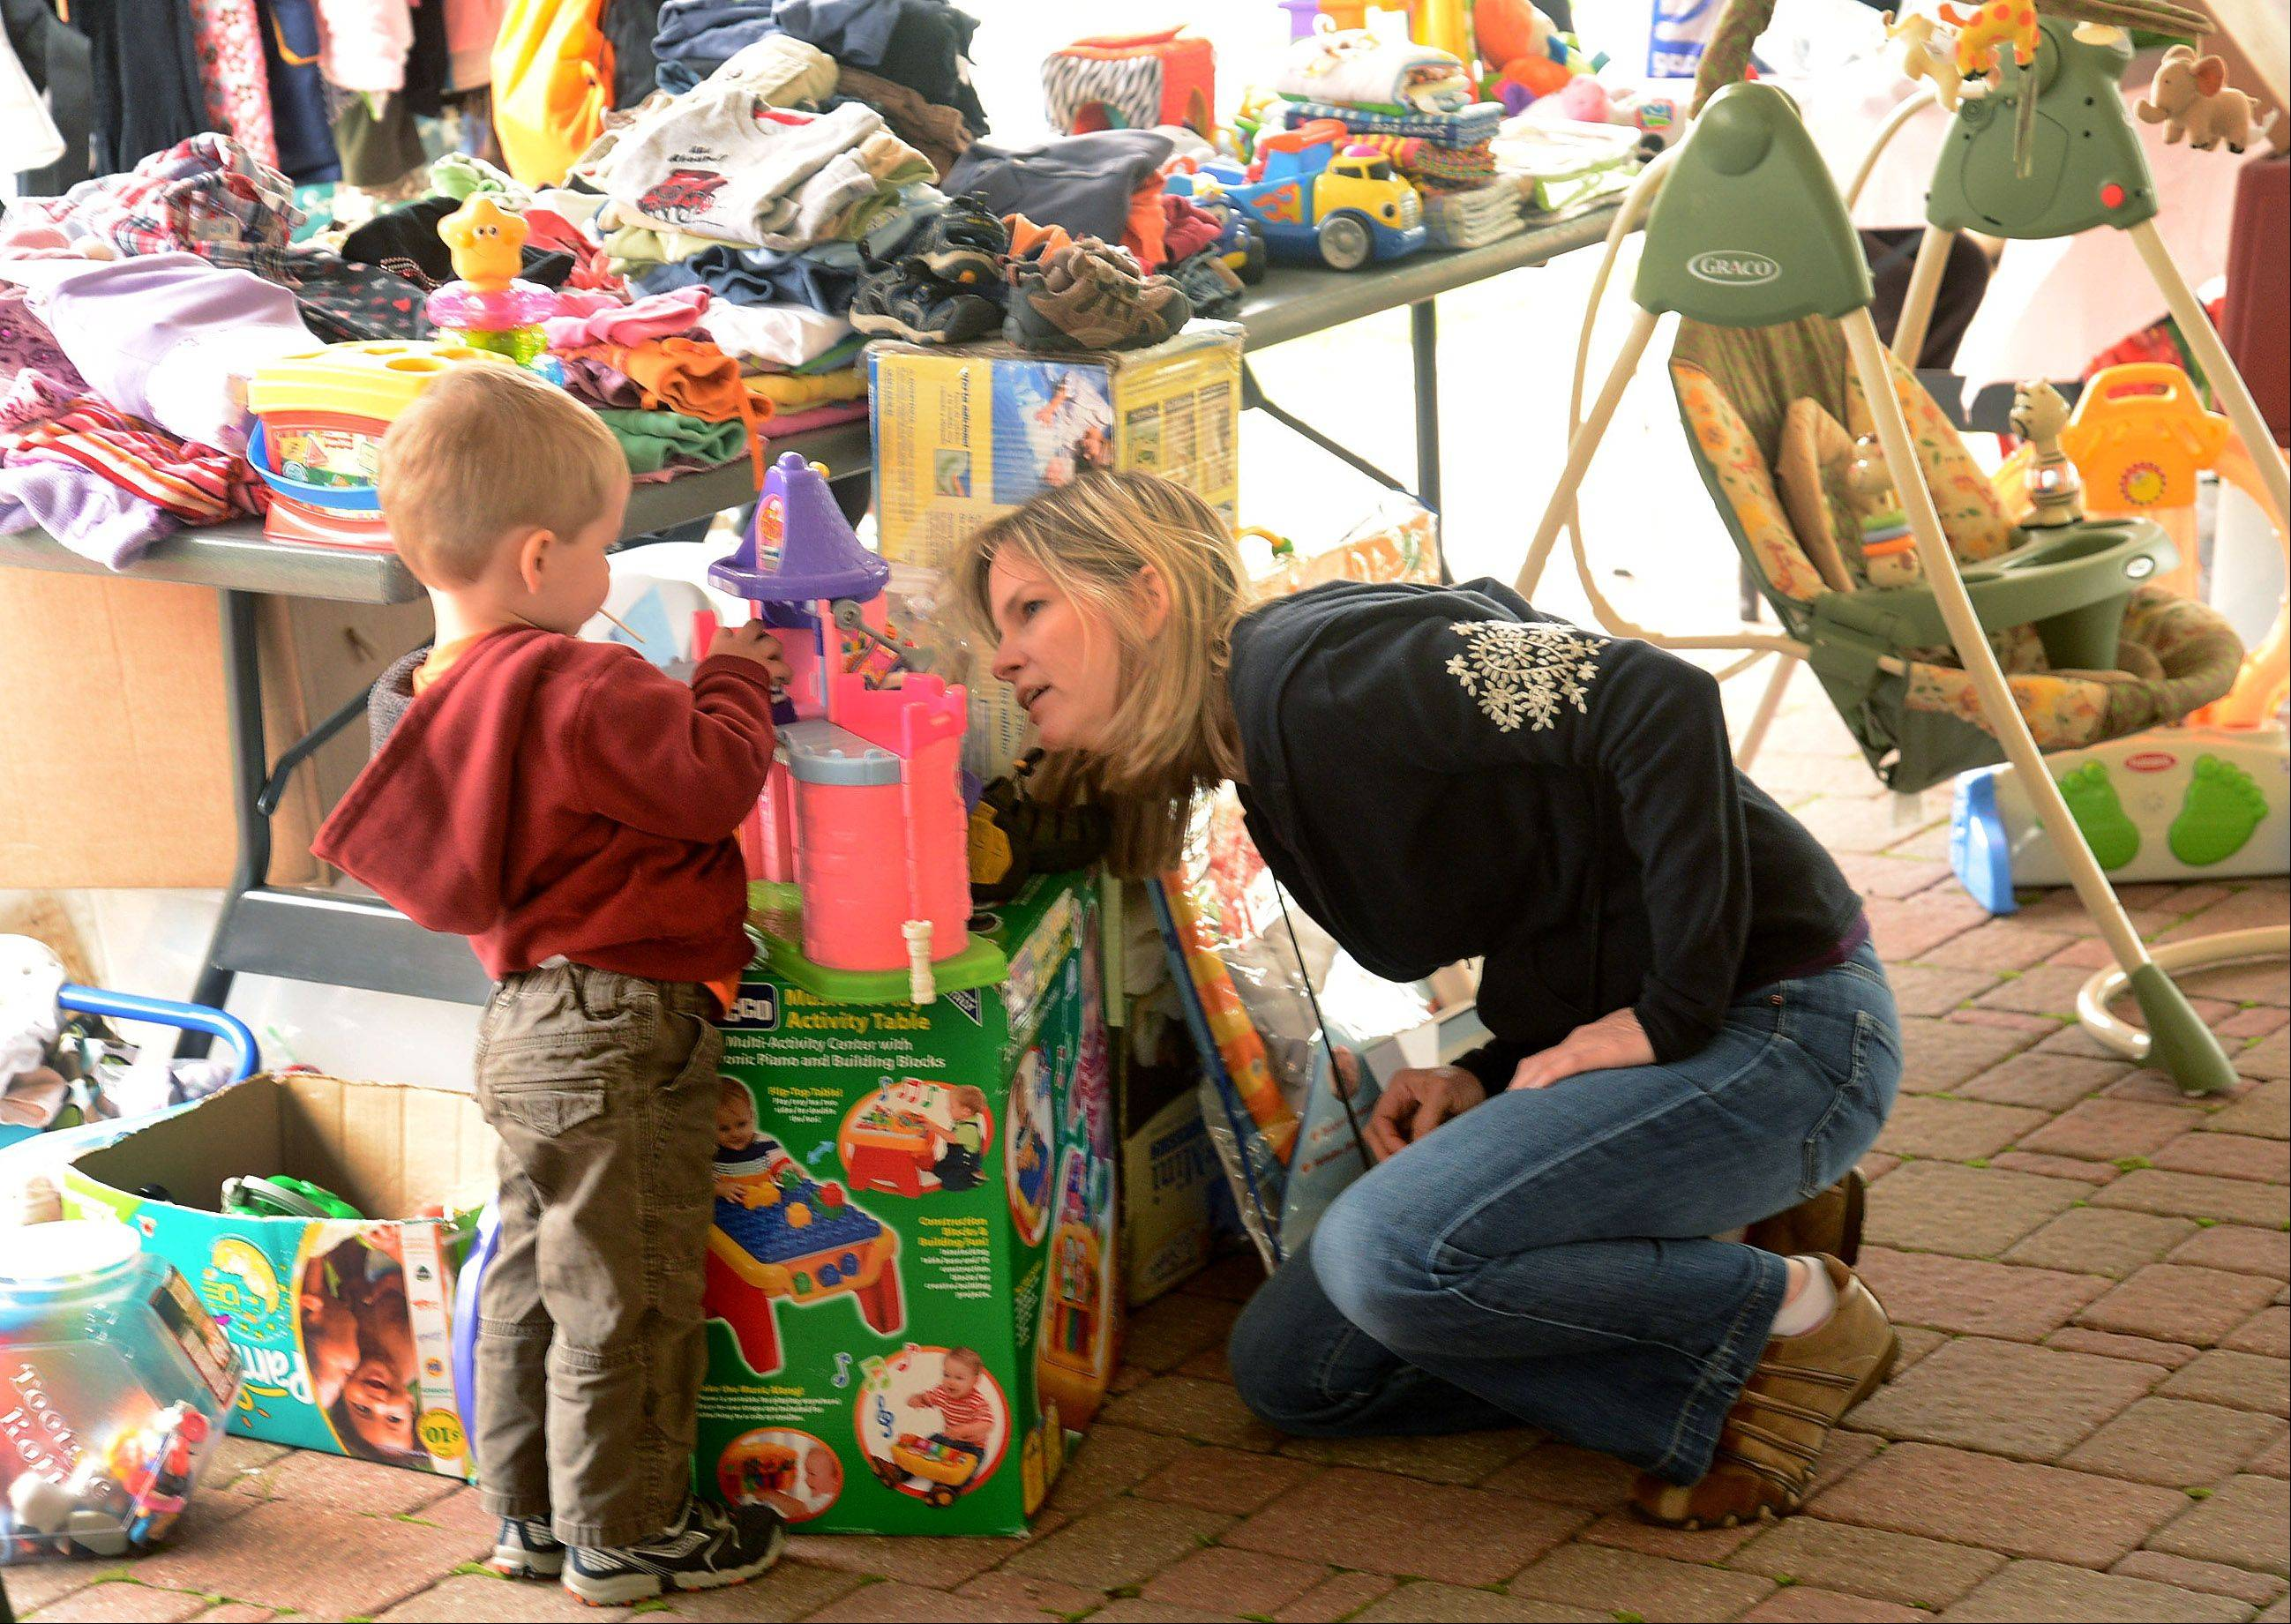 Robyn Russo of Arlington Heights and her 2-year-old son, Matthew, shop for children's toys and books on Friday at Twin Lakes Recreation Area in Palatine.